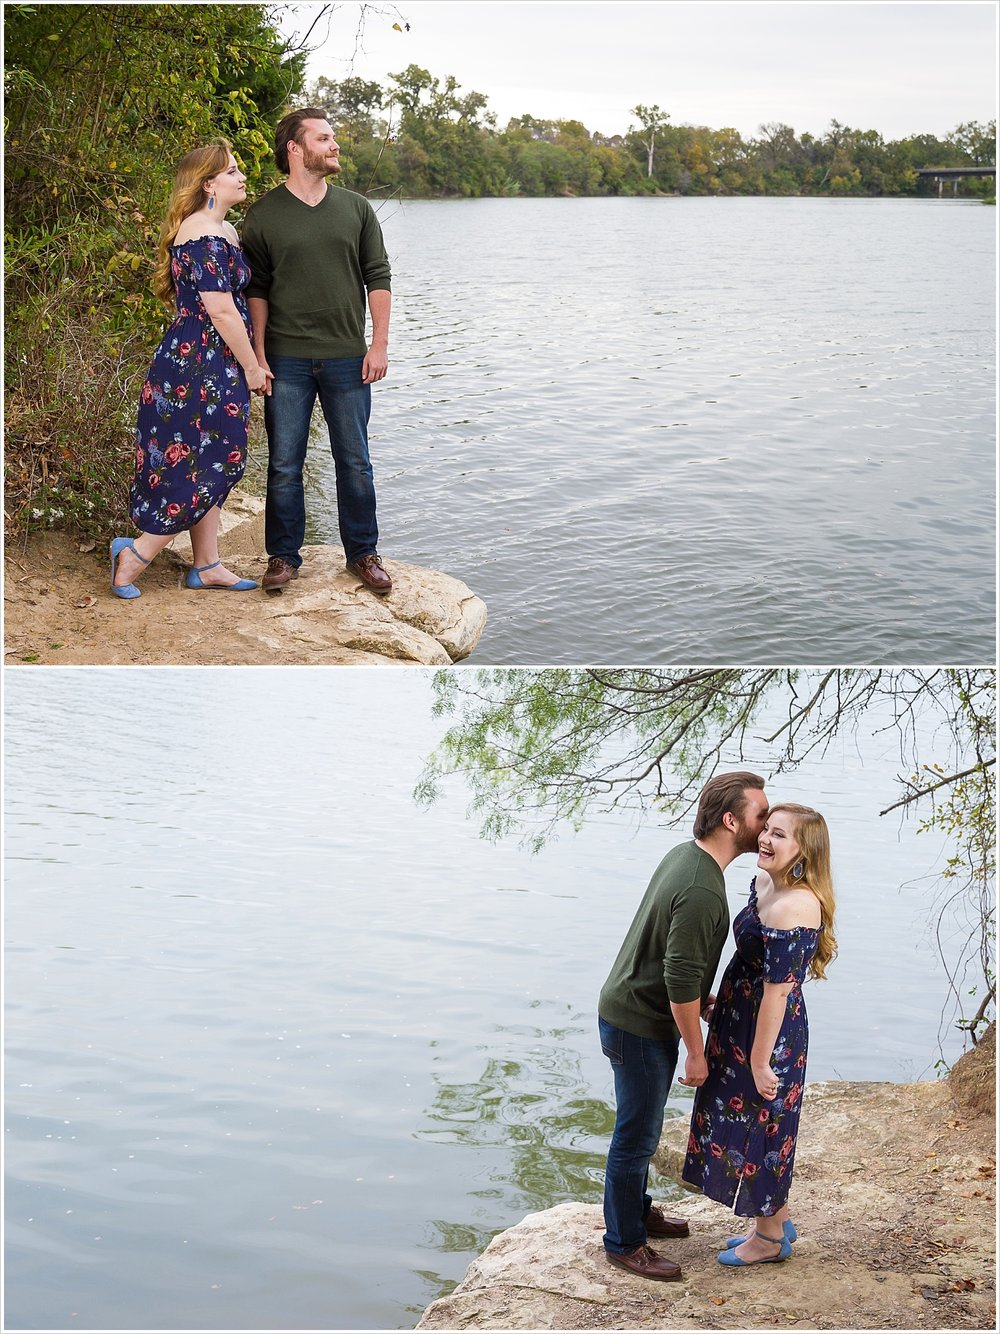 A couple laughs while whispering in each other's ear standing on the banks of the Brazos River in Waco, Texas for their engagement photos - Jason & Melaina Photography - www.jasonandmelaina.com